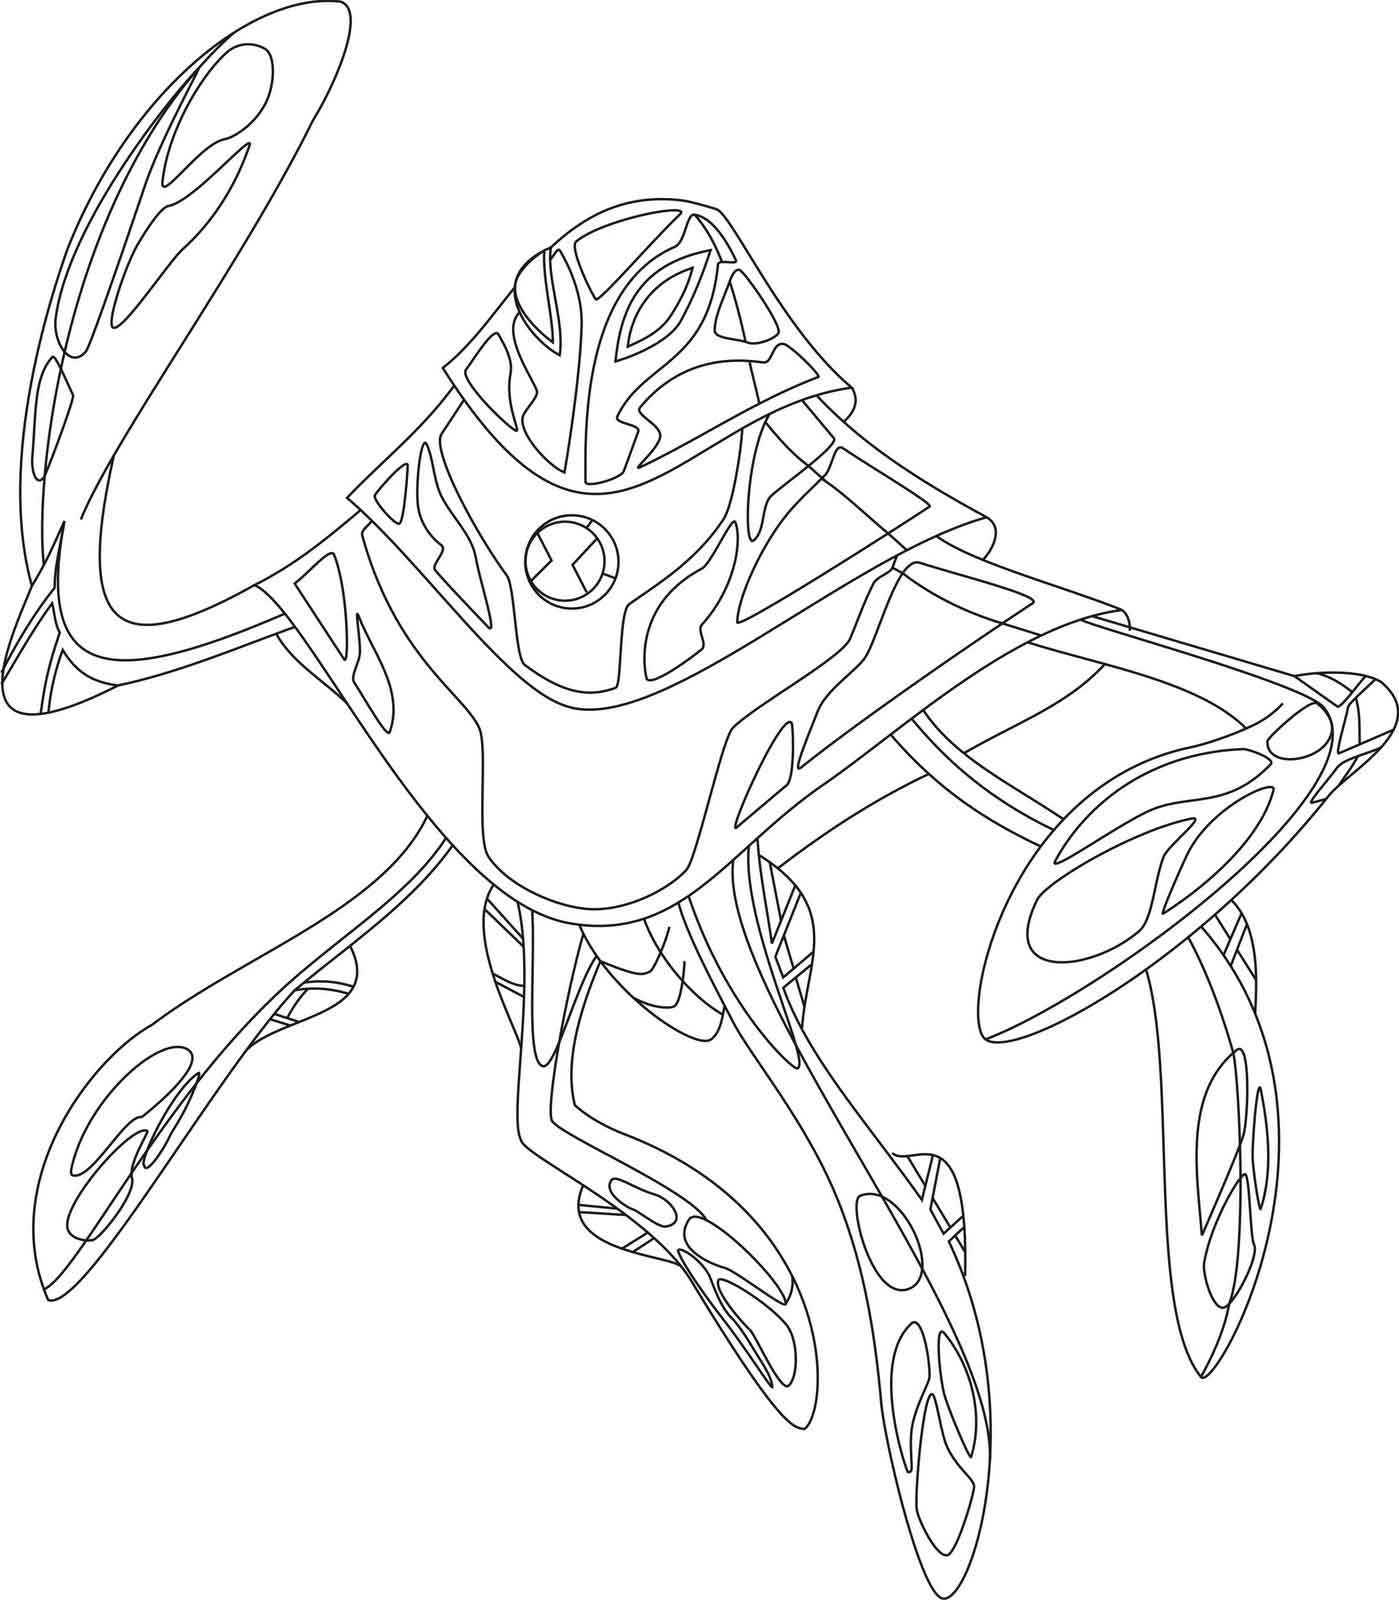 ben 10 for coloring ben 10 alien force coloring pages at getcoloringscom 10 coloring ben for